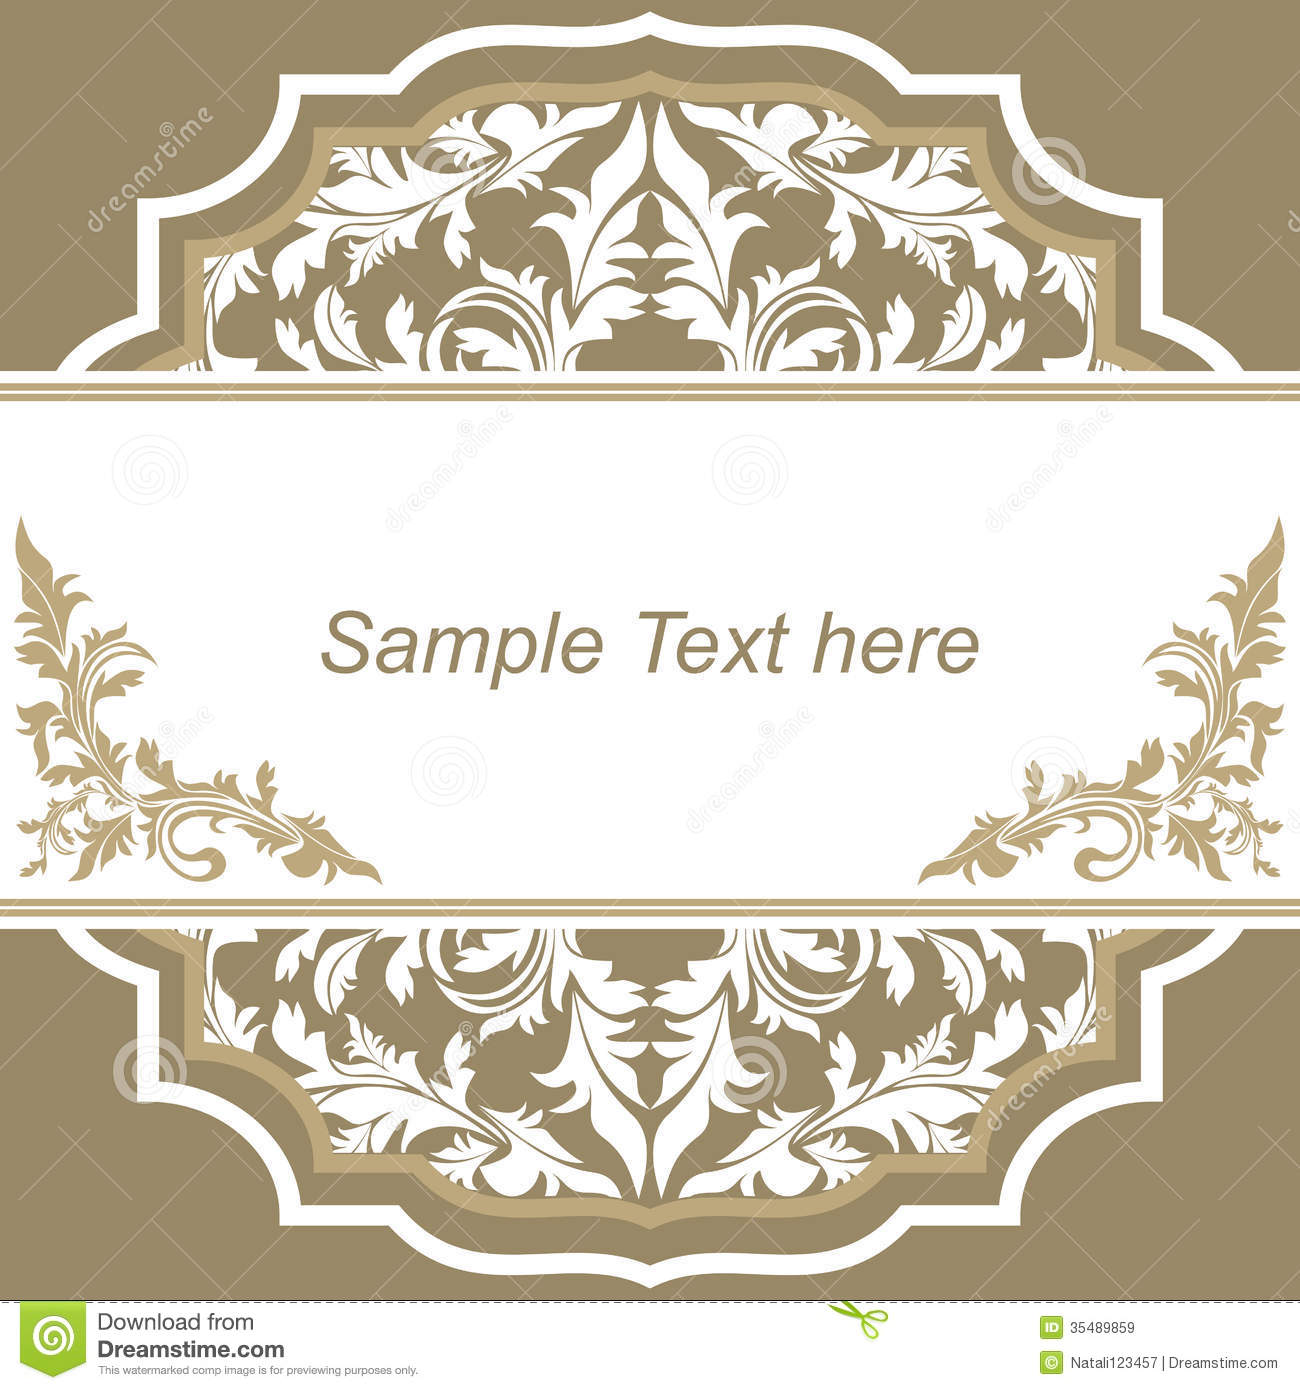 Invitation Design Template.  Free Invitation Design Templates